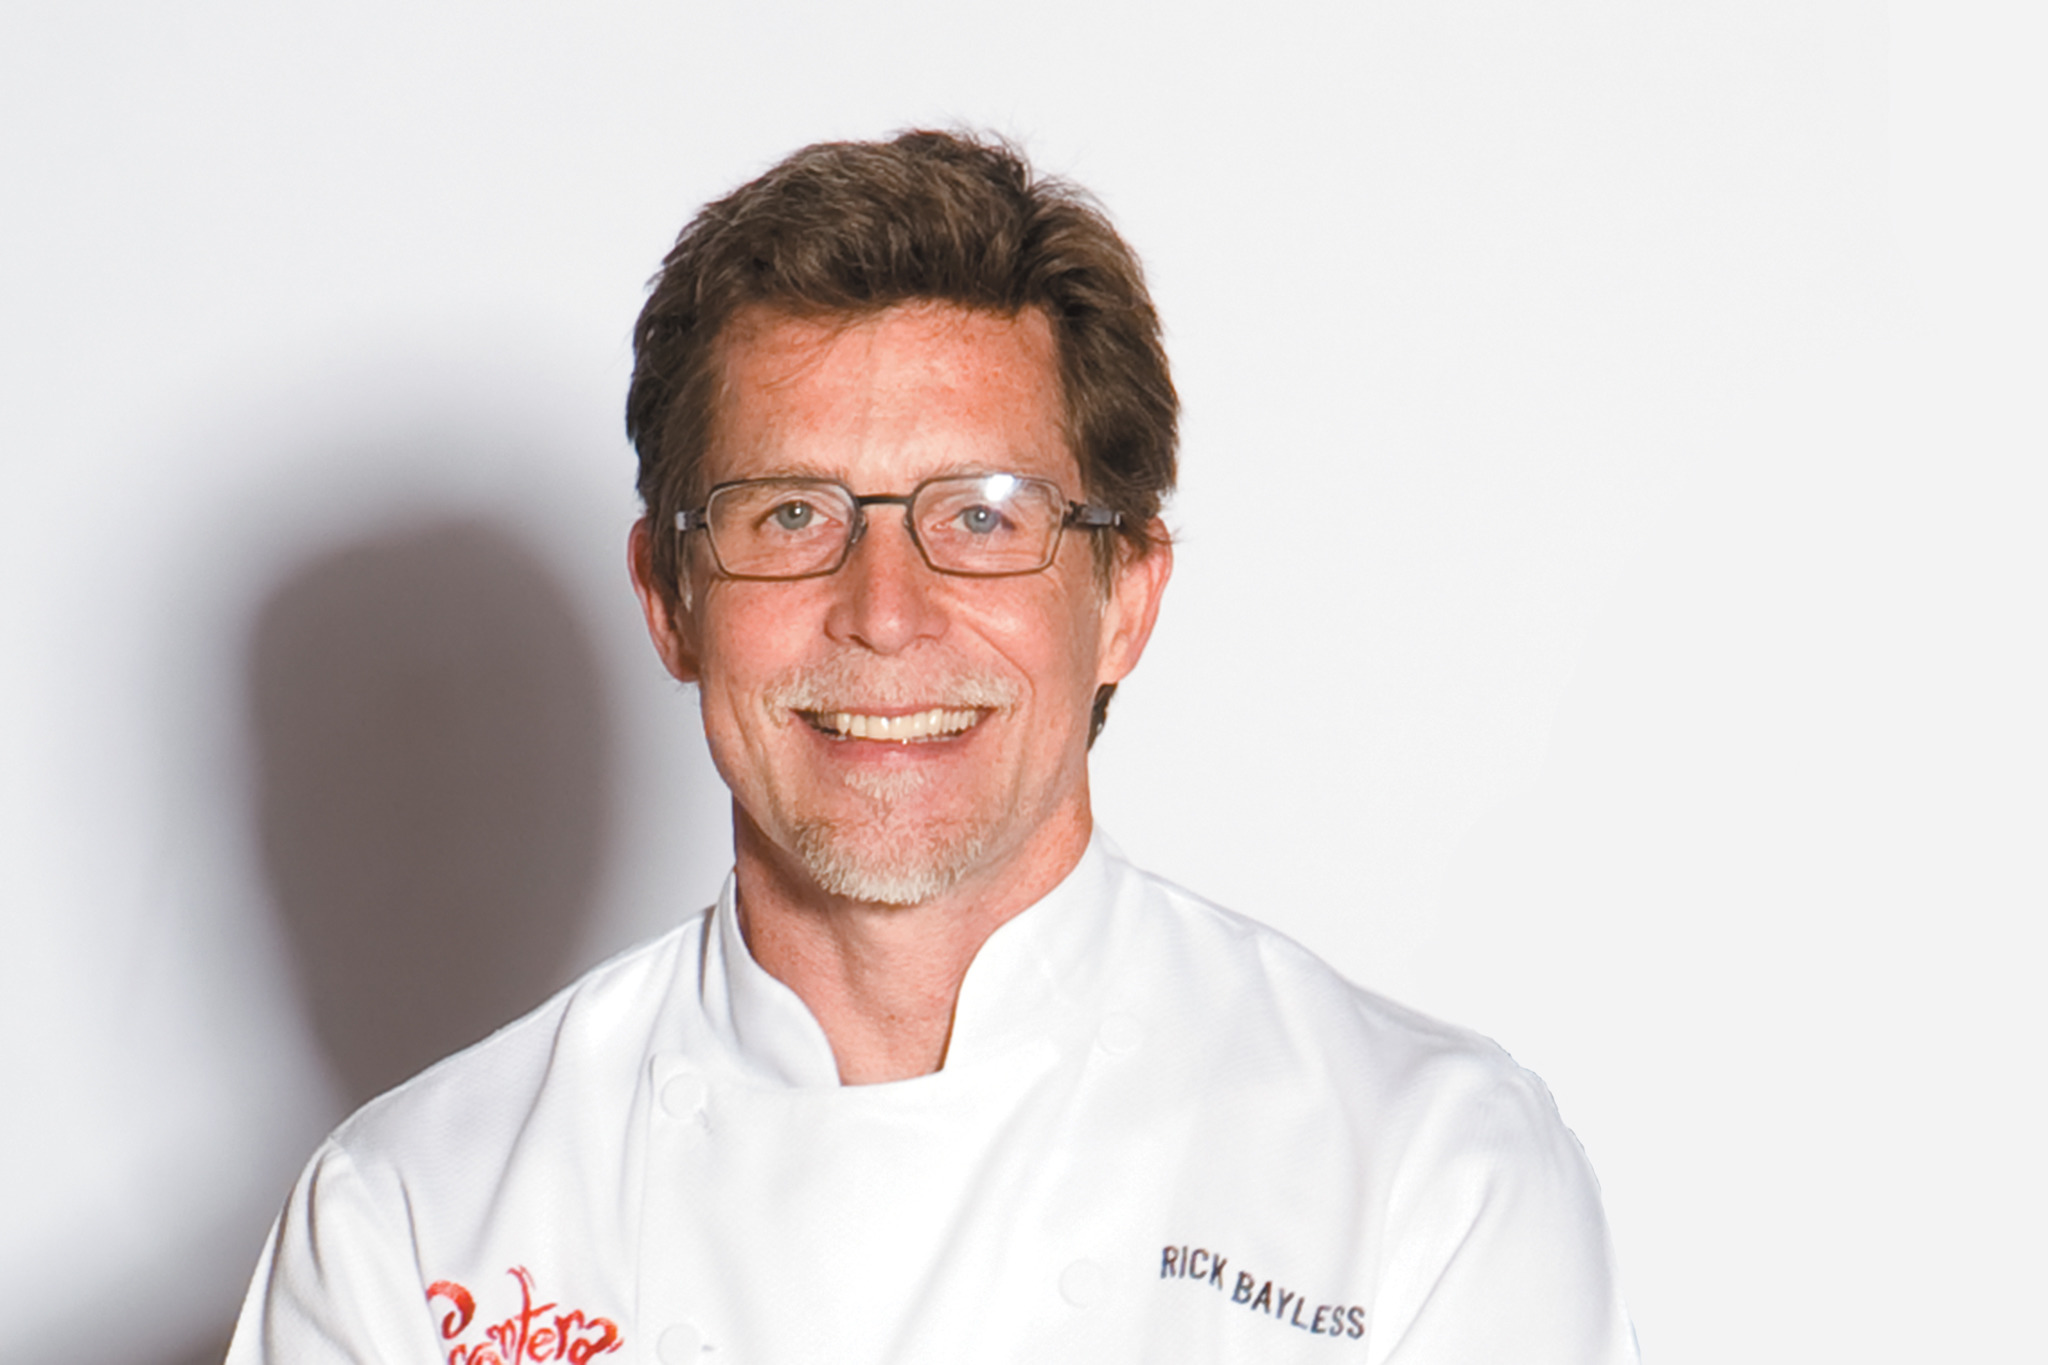 Dine at a Rick Bayless restaurant.